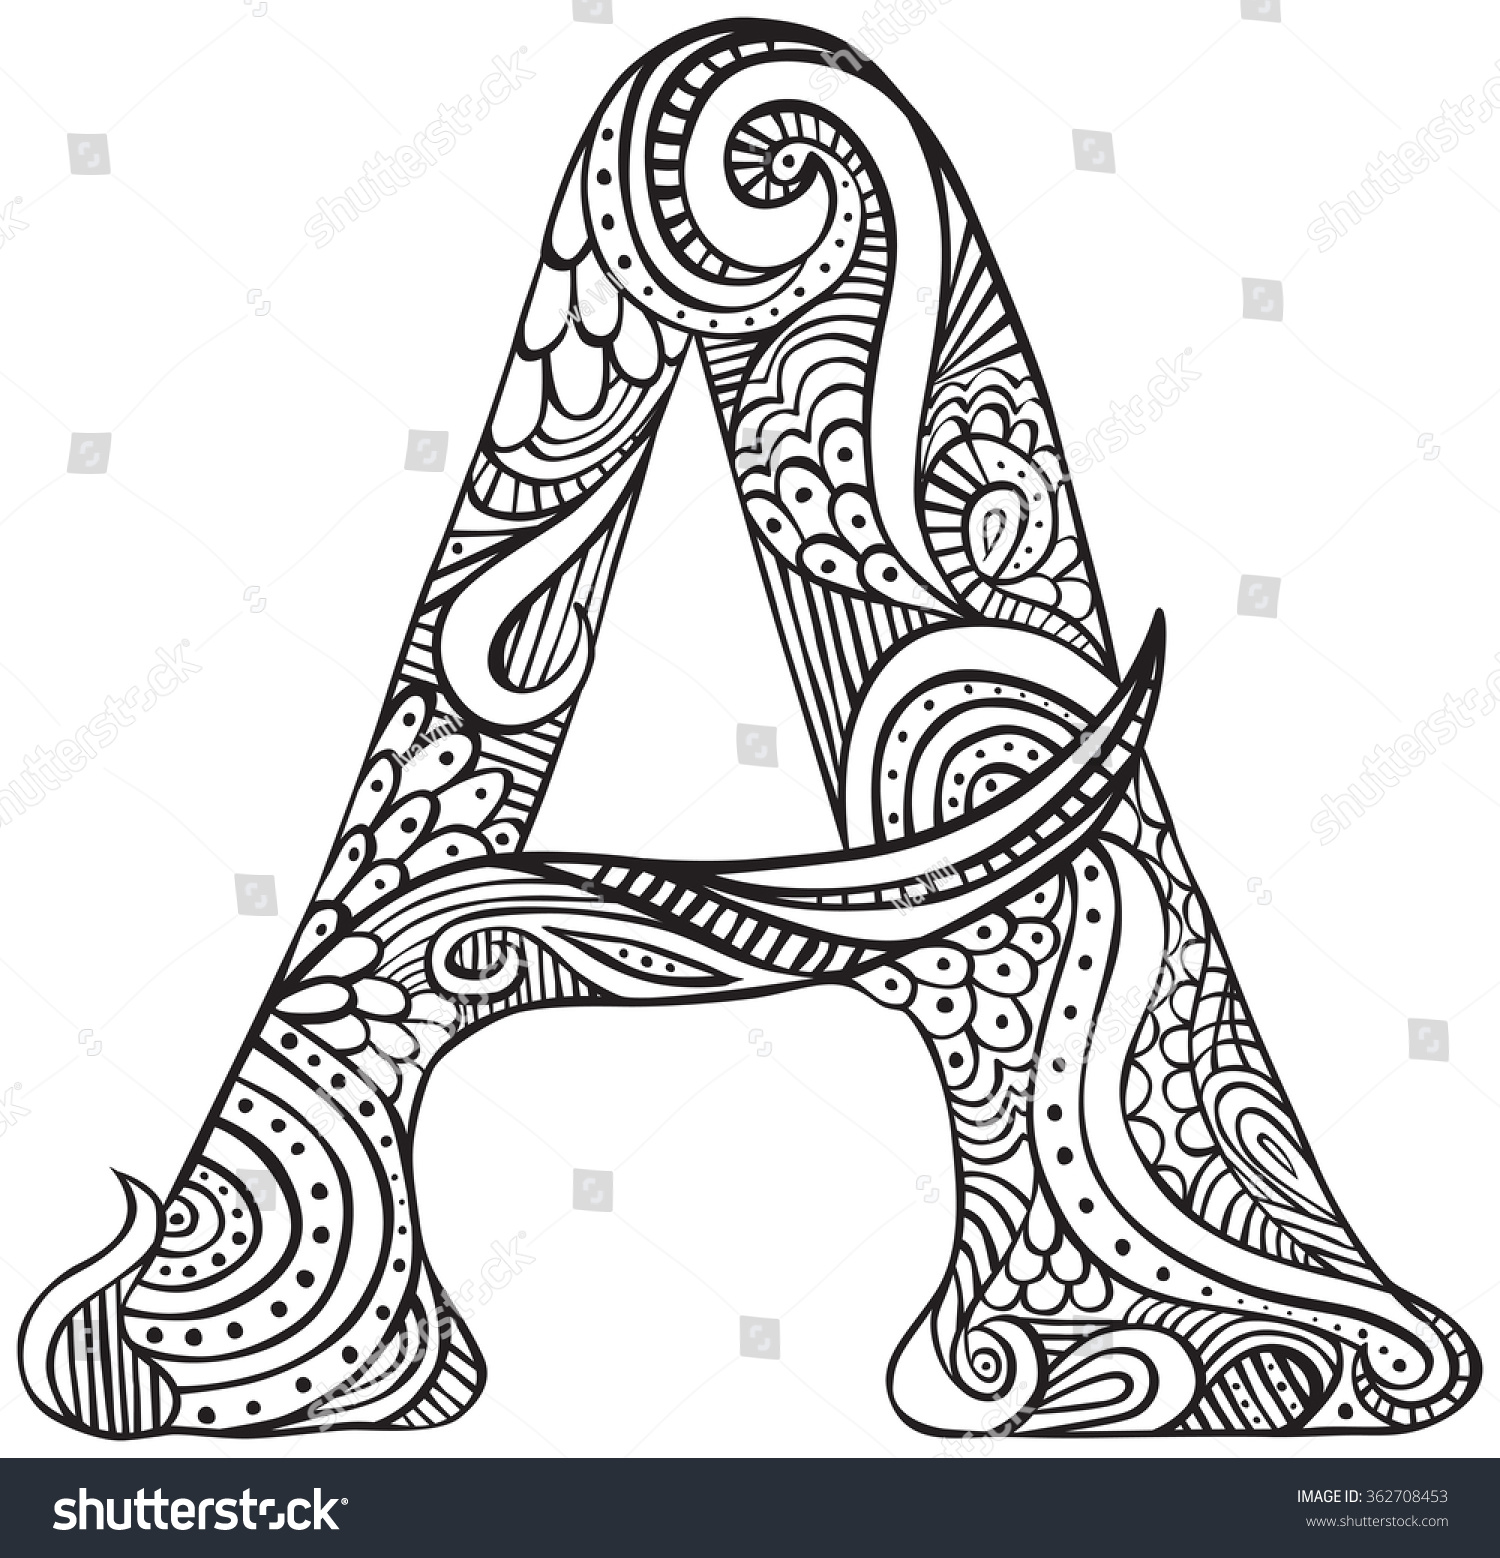 Hand Drawn Capital Letter Black Coloring Stock Vector 362708453